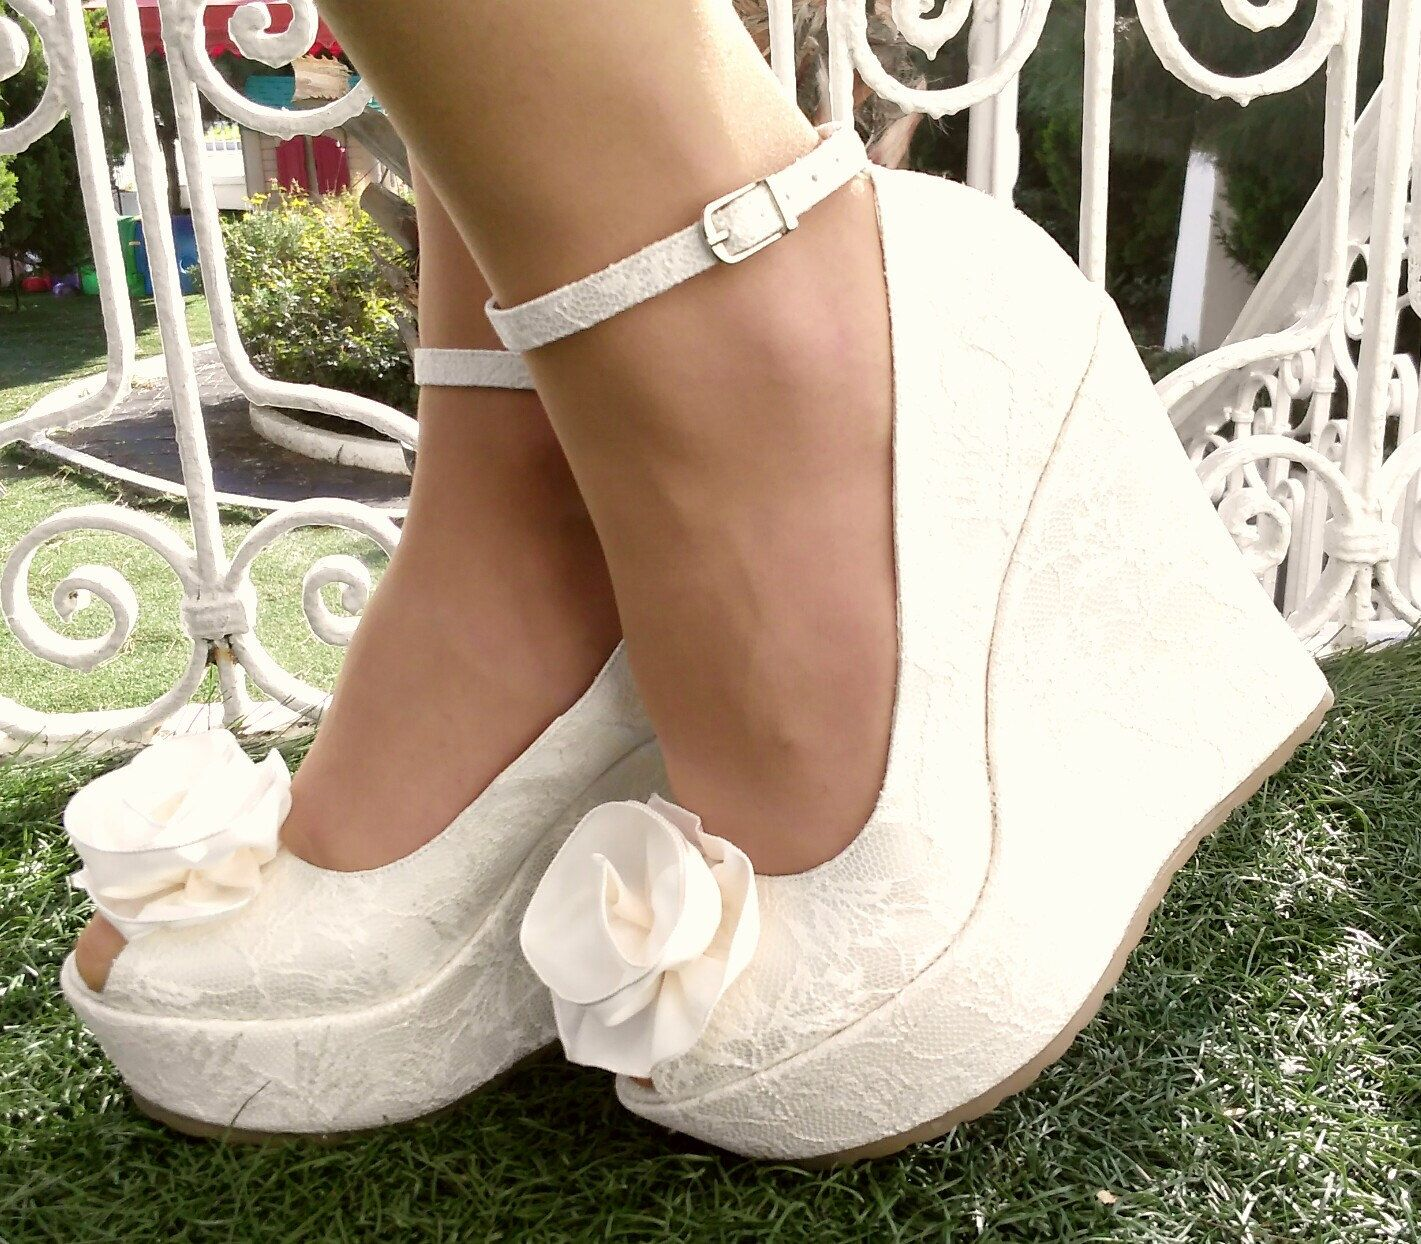 Wedding Wedding Shoes Bridal Wedge Shoes Bridal Shoes Bridal Platform Wedges Bridal Wedge Shoes Wedge Wedding Shoes Bridal Wedges Wedding Shoes Wedge Lace